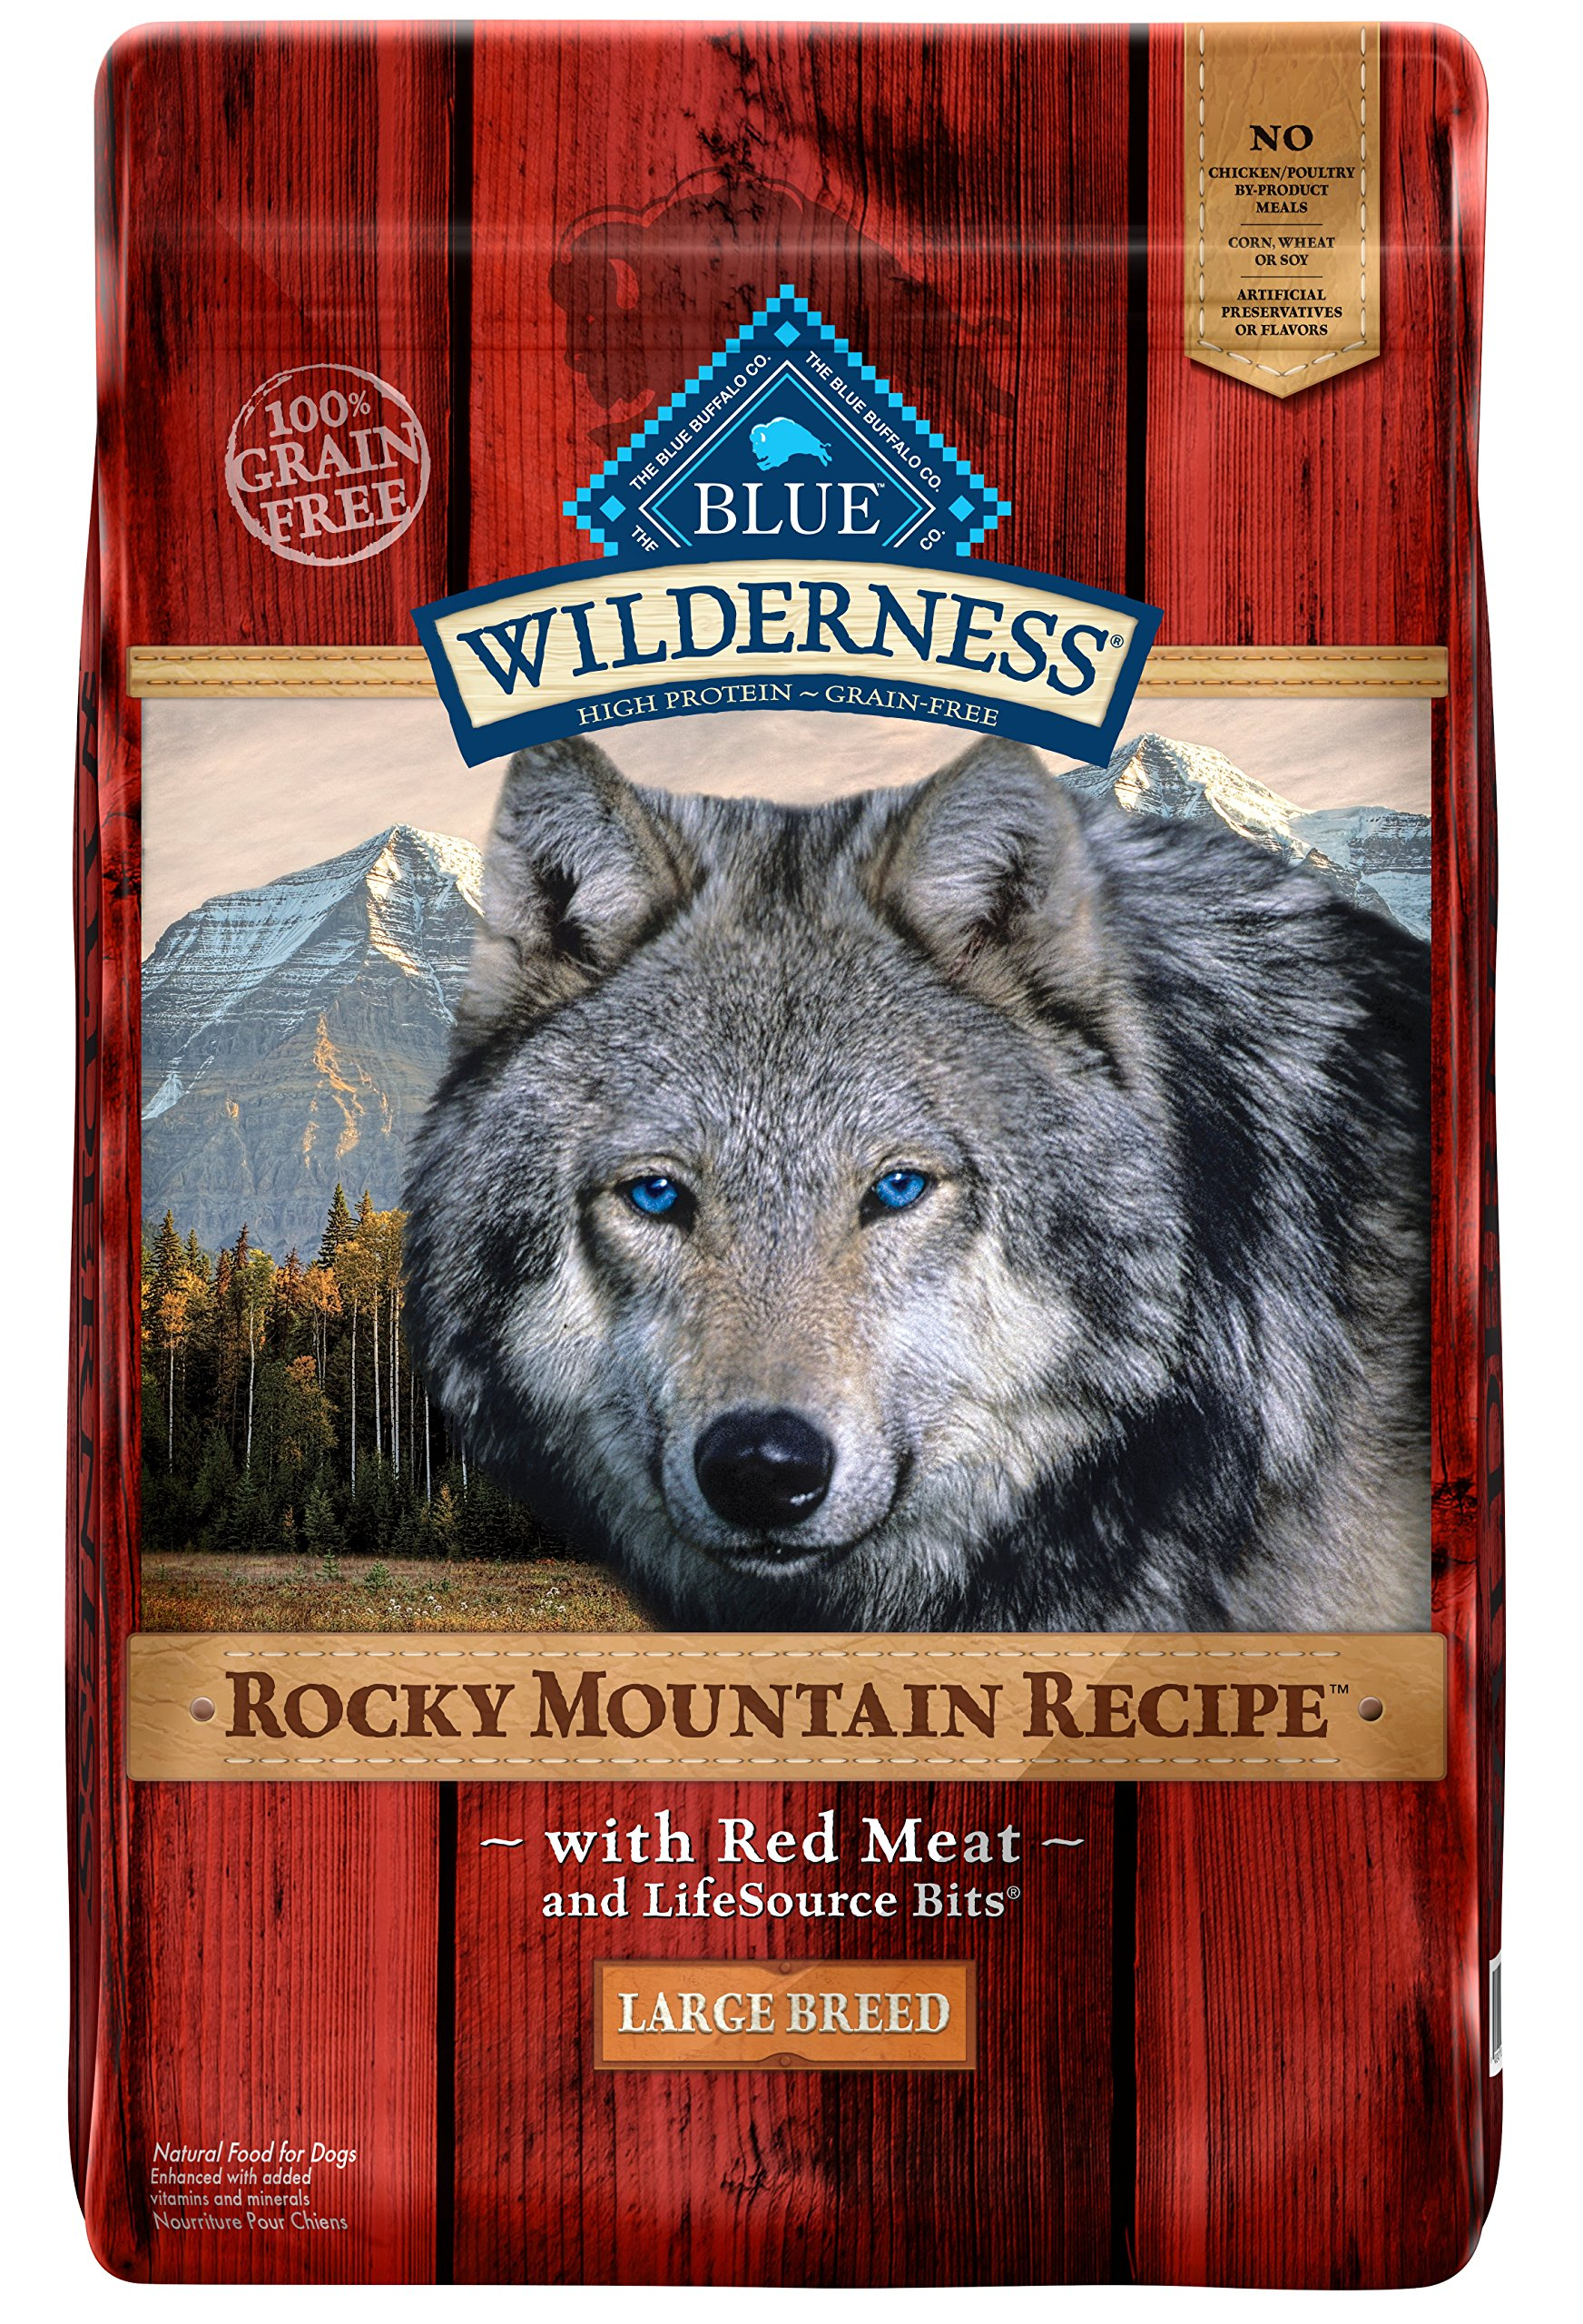 BLUE Wilderness Rocky Mountain Recipe Adult Large Breed Grain Free Red Meat Dry Dog Food 22-lb